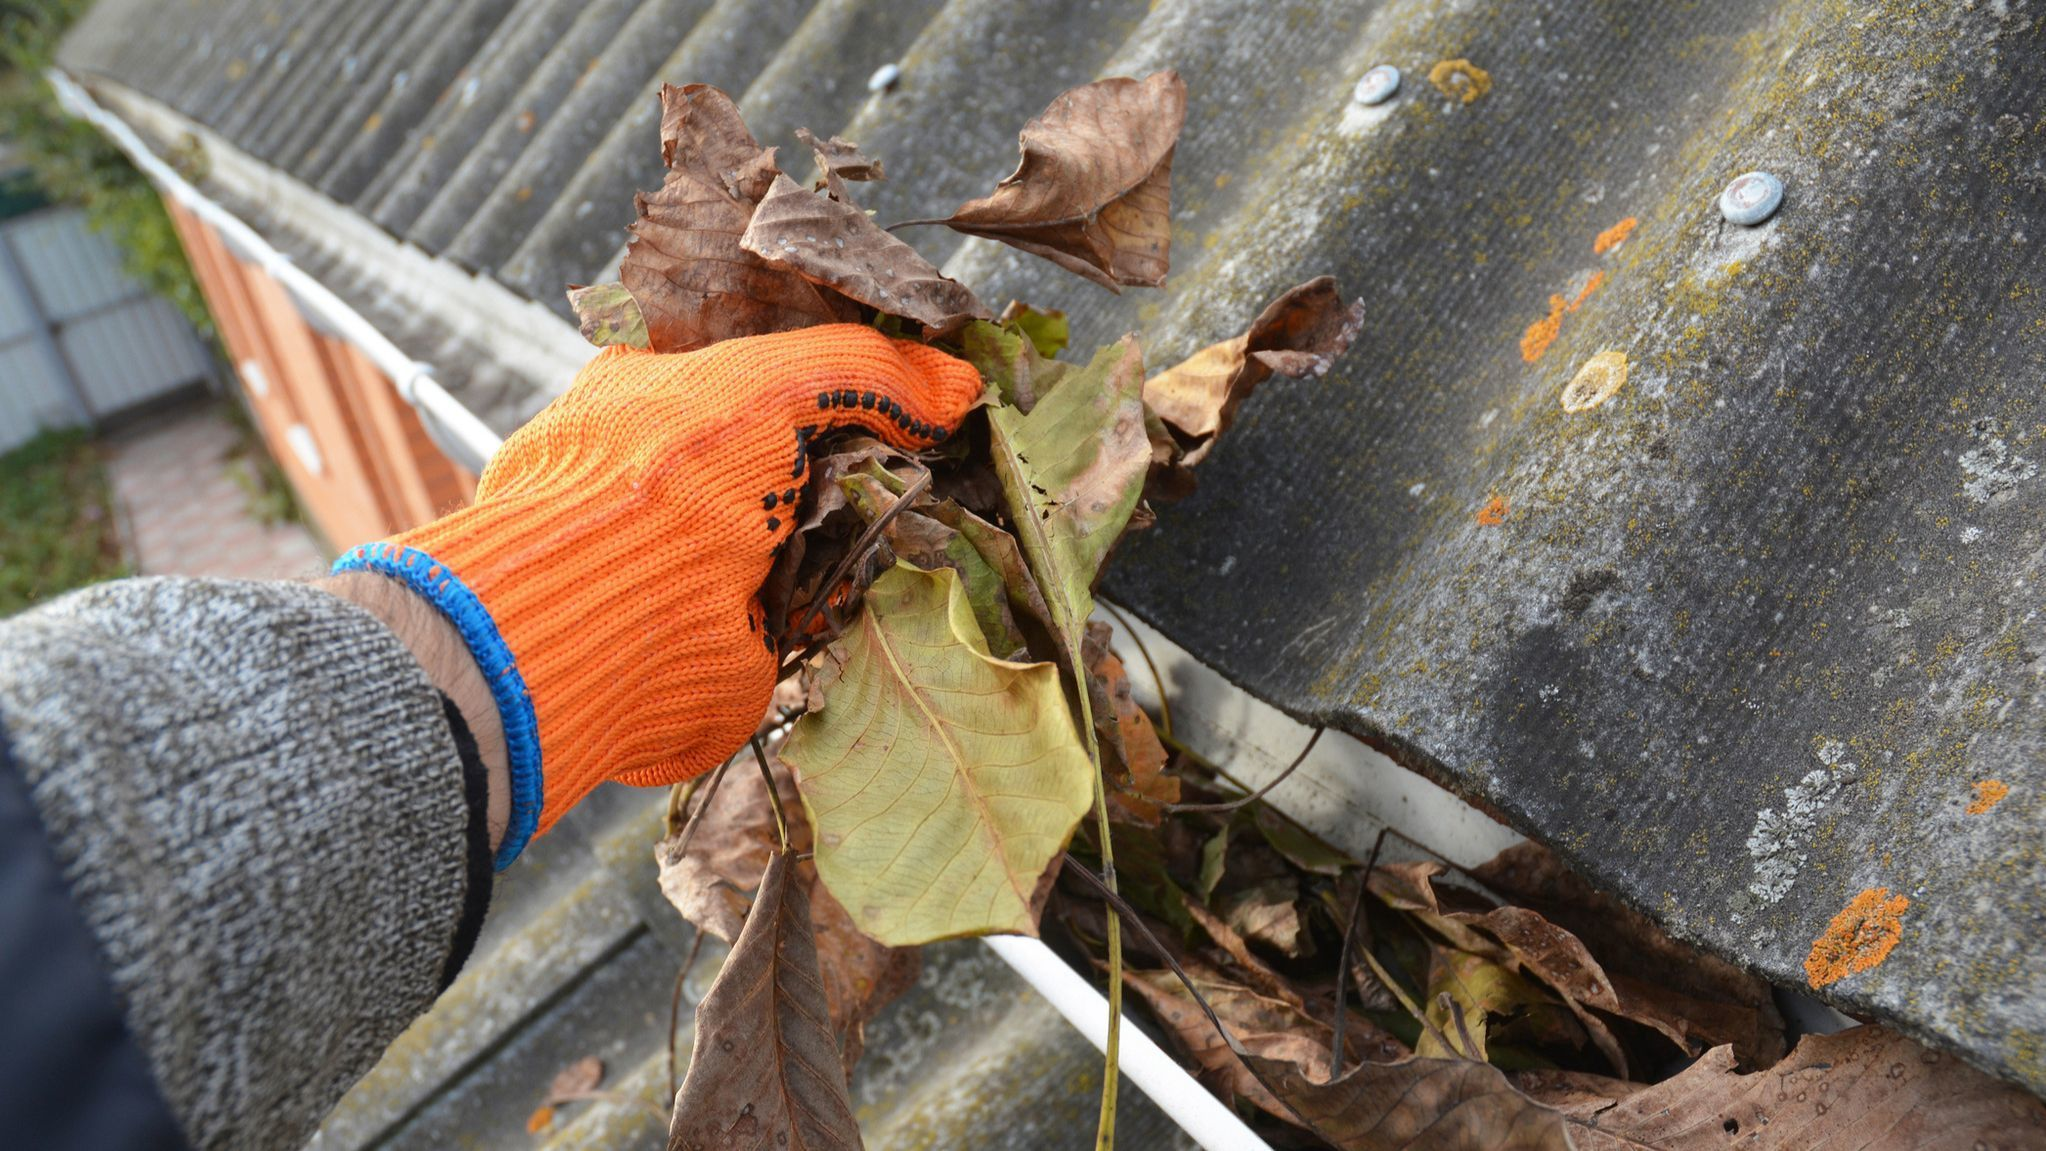 Your December garden chore list: Water wisely, plant liberally and beware of frosts